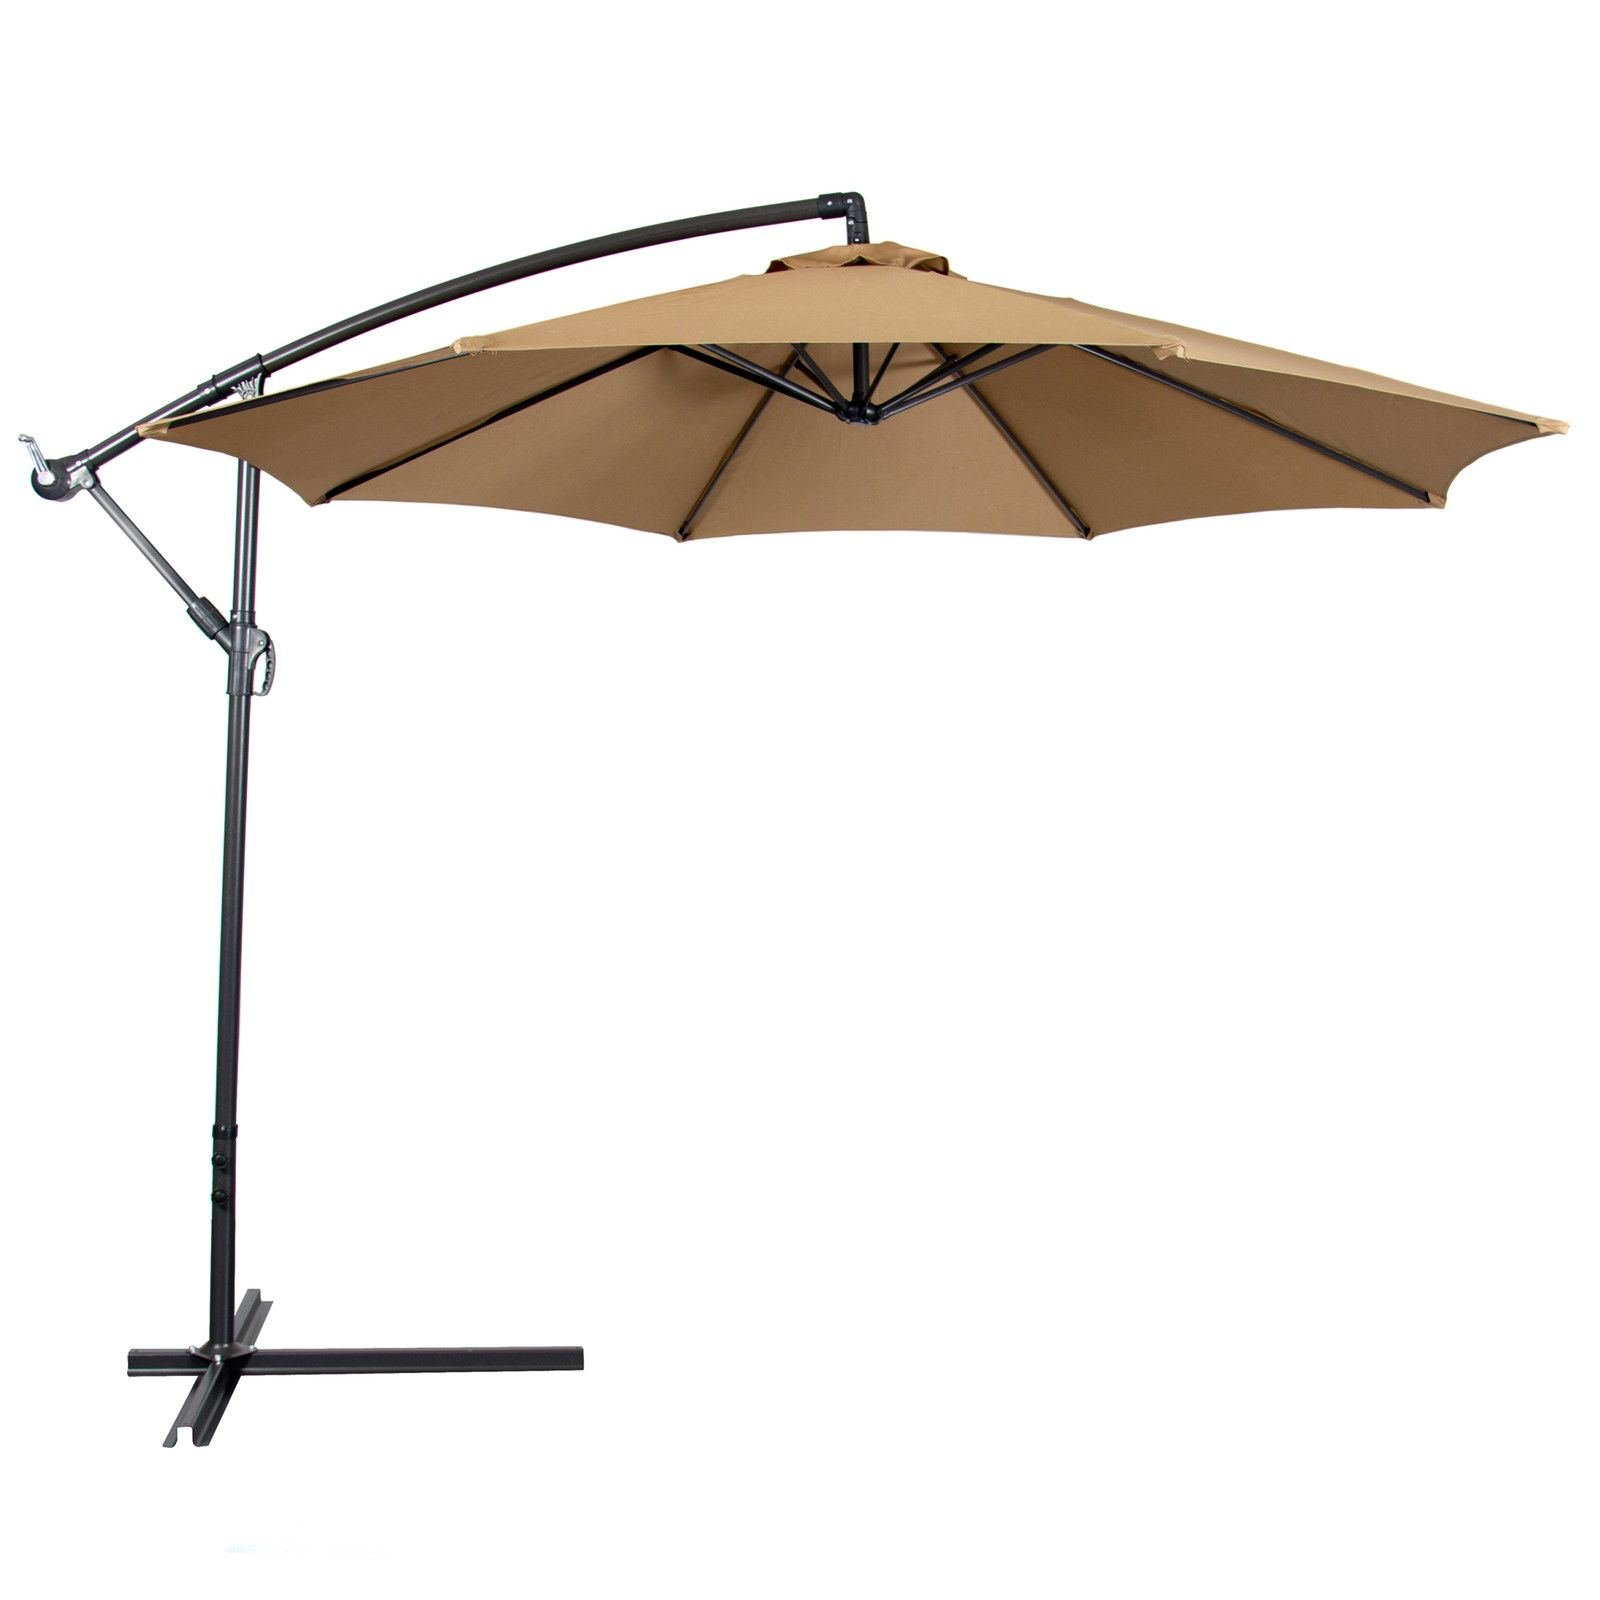 Patio Hanging Umbrella Outdoor Market Umbrella New Tan You Can Use This In Your Patio By the Pool by One Happy Shop